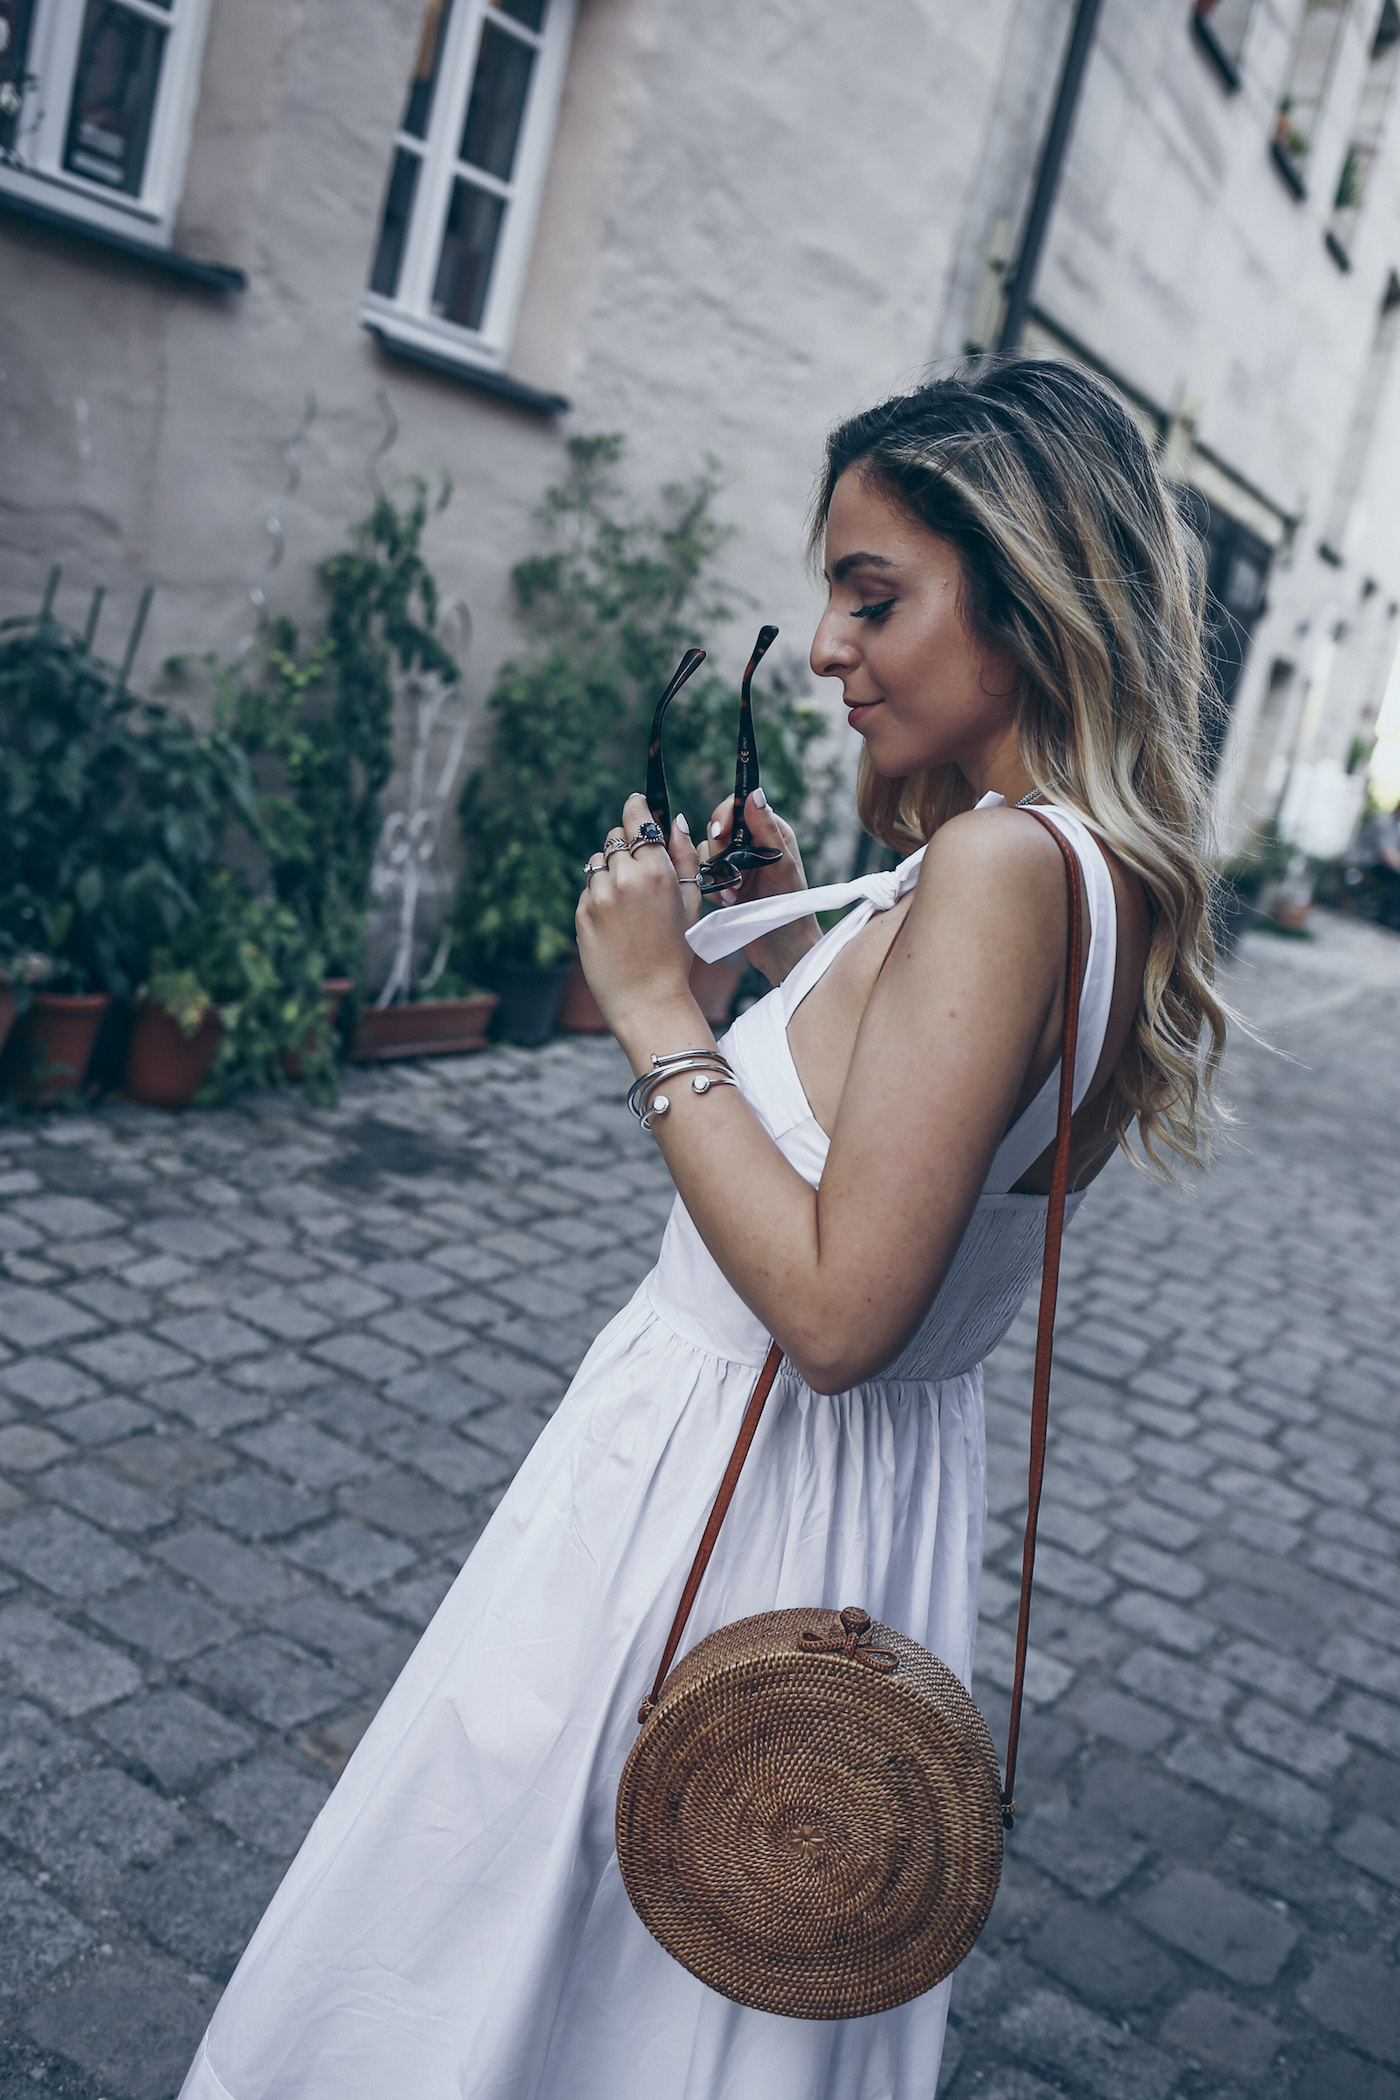 Hermes Oran Sandals Street Style Outfit Summer Casual Minimal Chic Fashion All White | Want Get Repeat Blog Erlangen Nürnberg Fashion Blogger